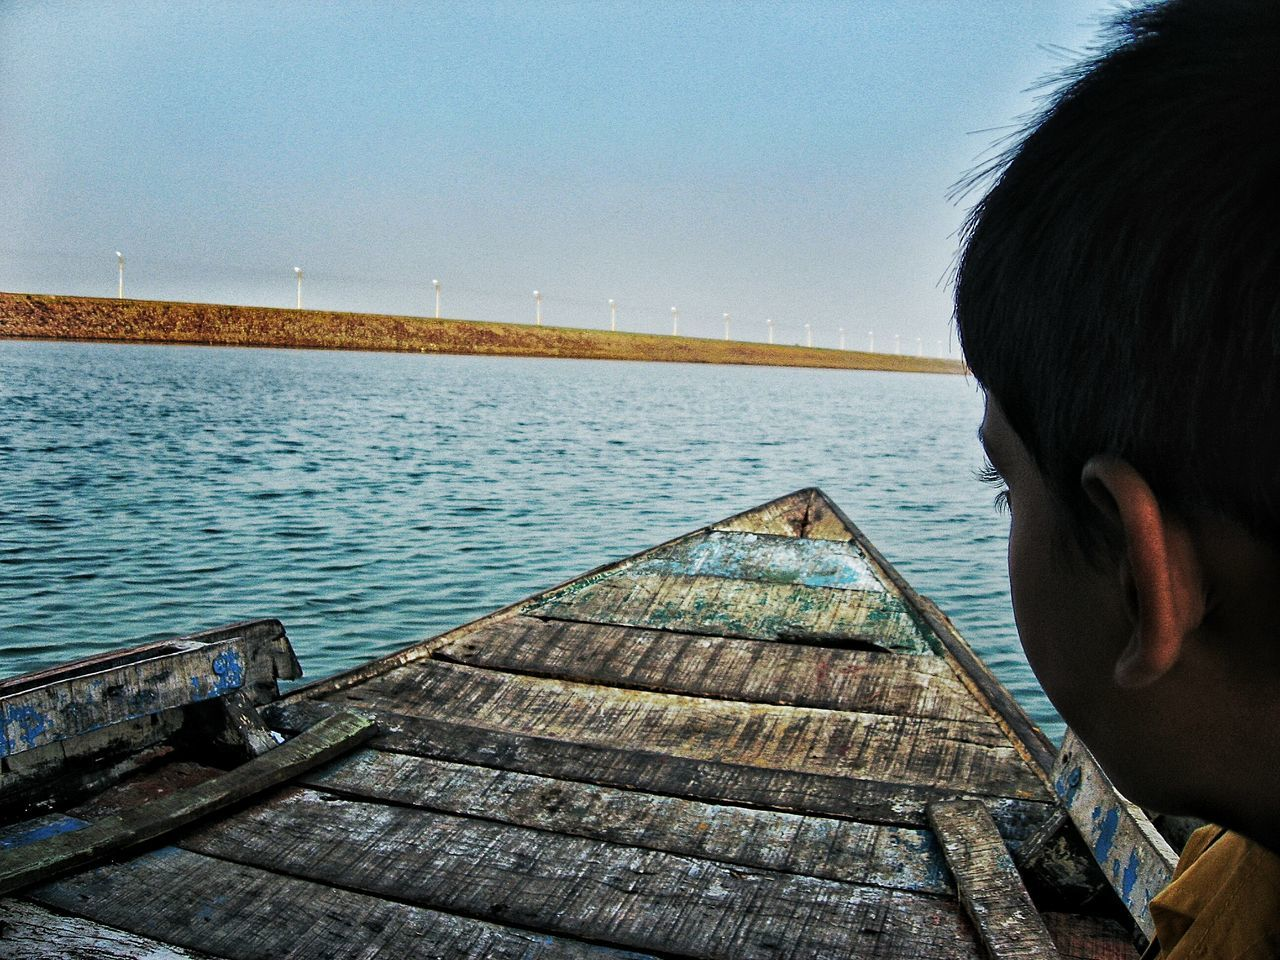 sea, water, pier, wood - material, clear sky, real people, one person, day, outdoors, sky, headshot, nature, boys, men, childhood, wood paneling, horizon over water, close-up, people